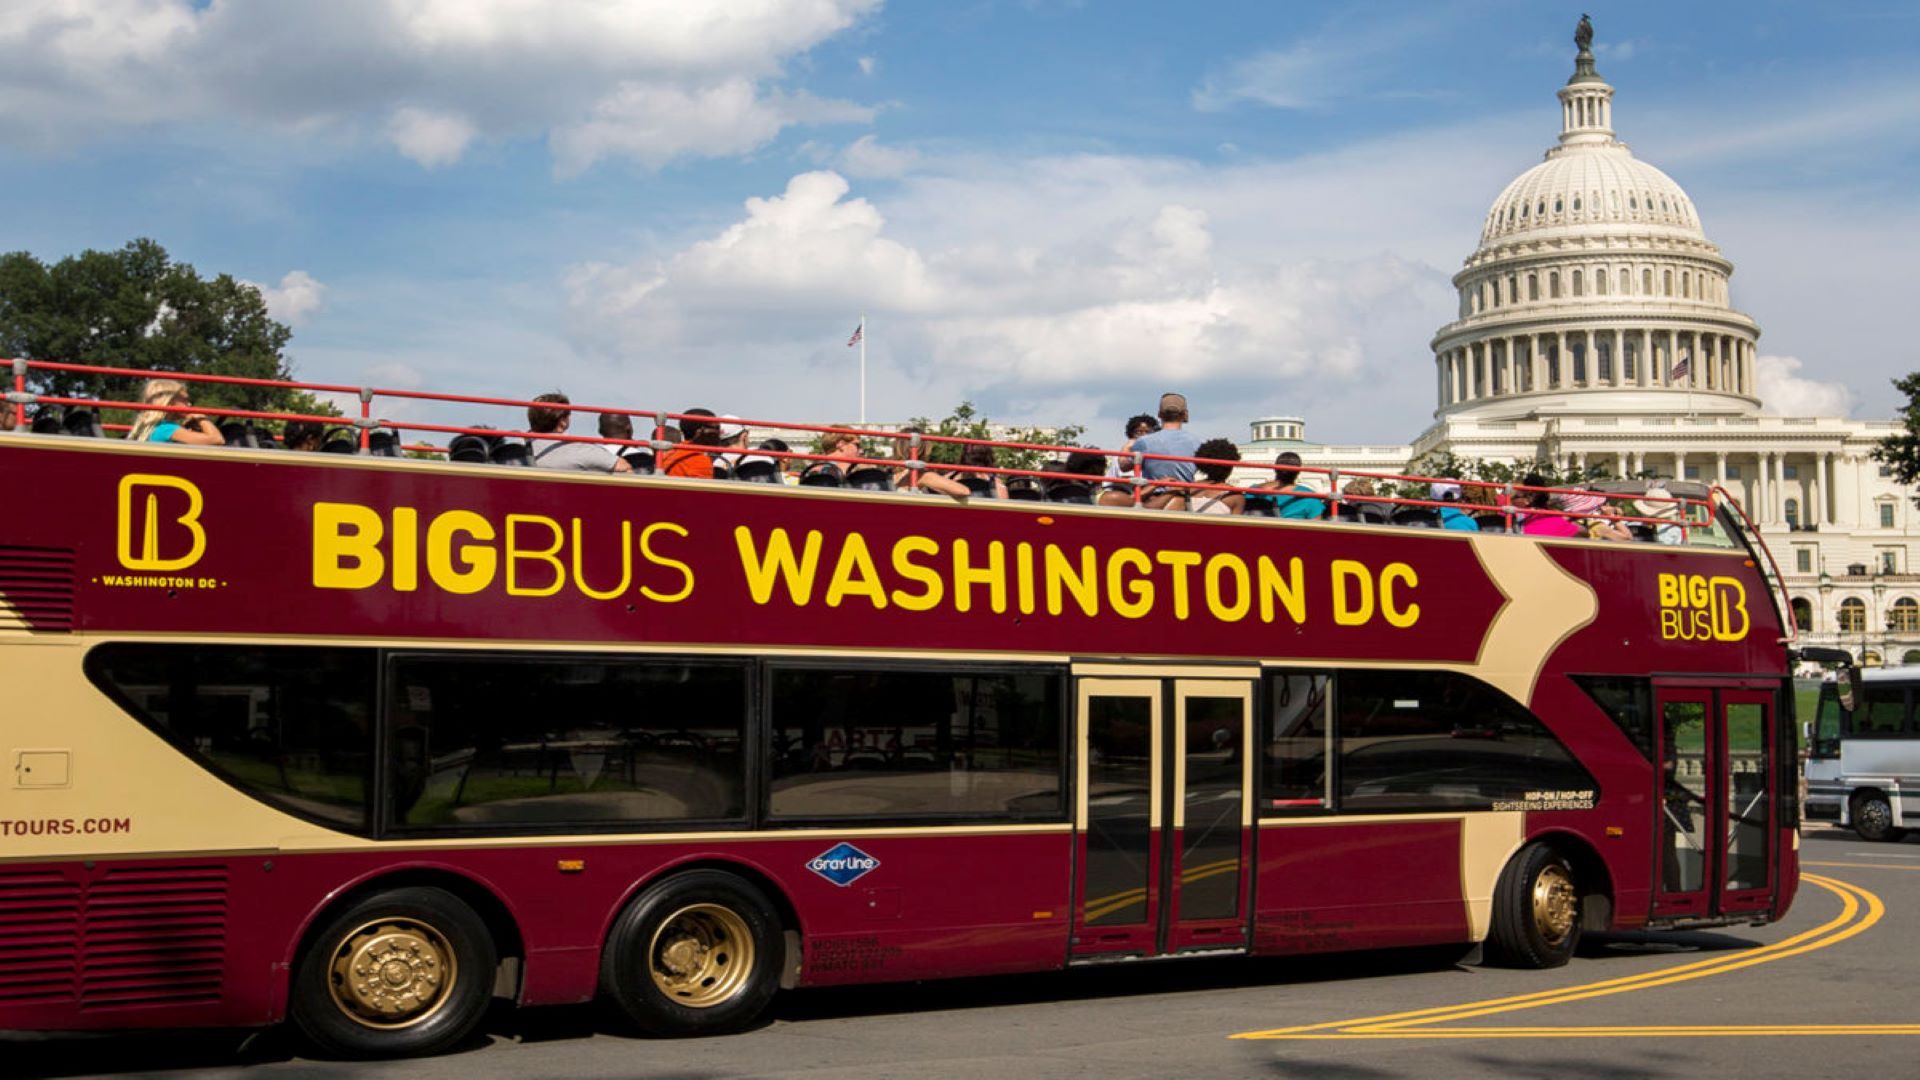 Big Bus Tours - Ticket Premium - Alojamientos en Washington D.C.